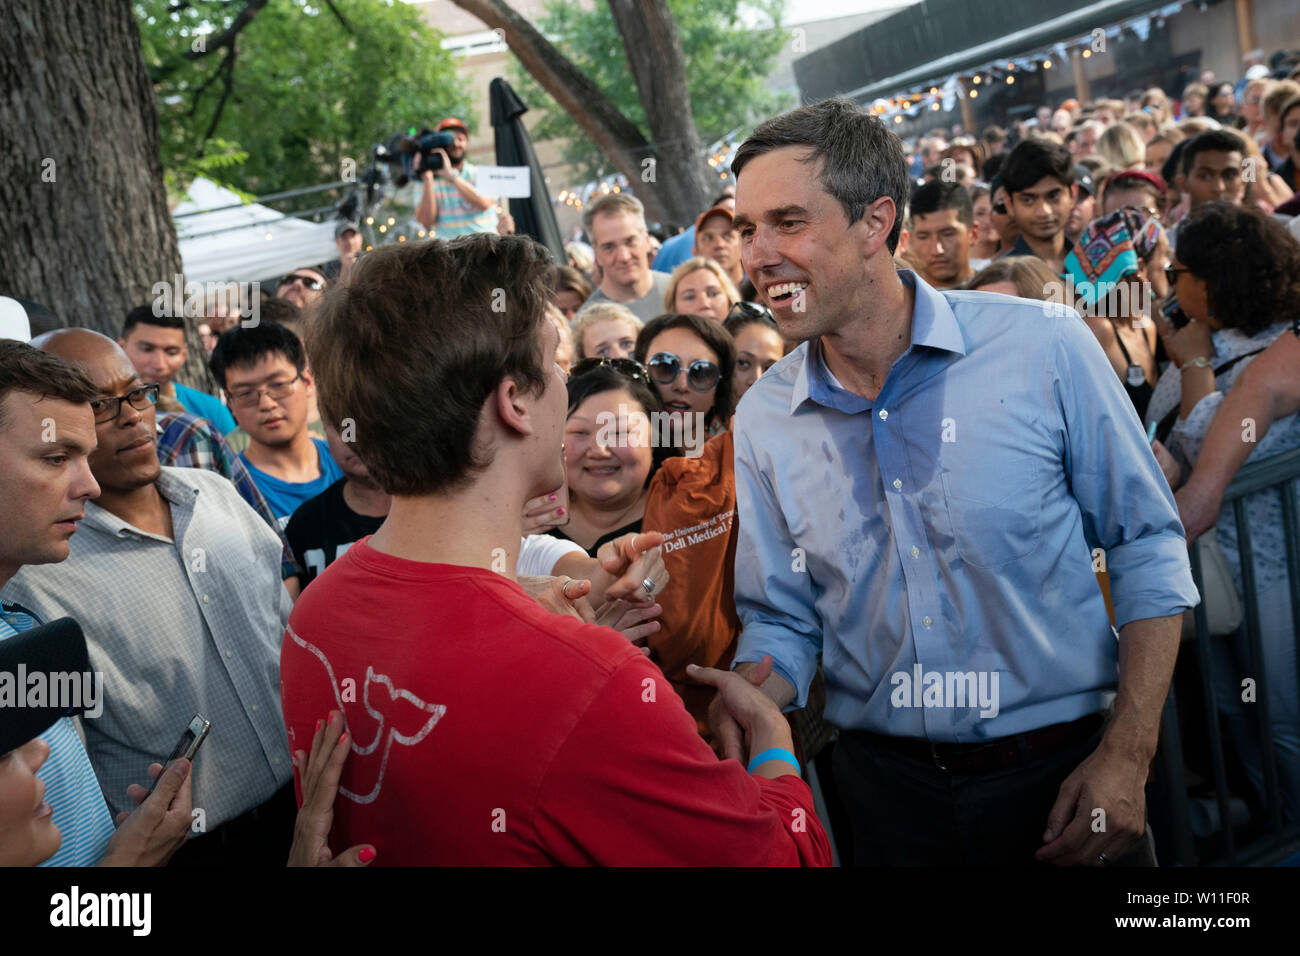 U.S. Democratic presidential primary candidate Beto O'Rourke works up a sweat while greeting some of the 300 supporters attending a campaign rally at Scholtz Garten in downtown Austin, Texas USA. Stock Photo